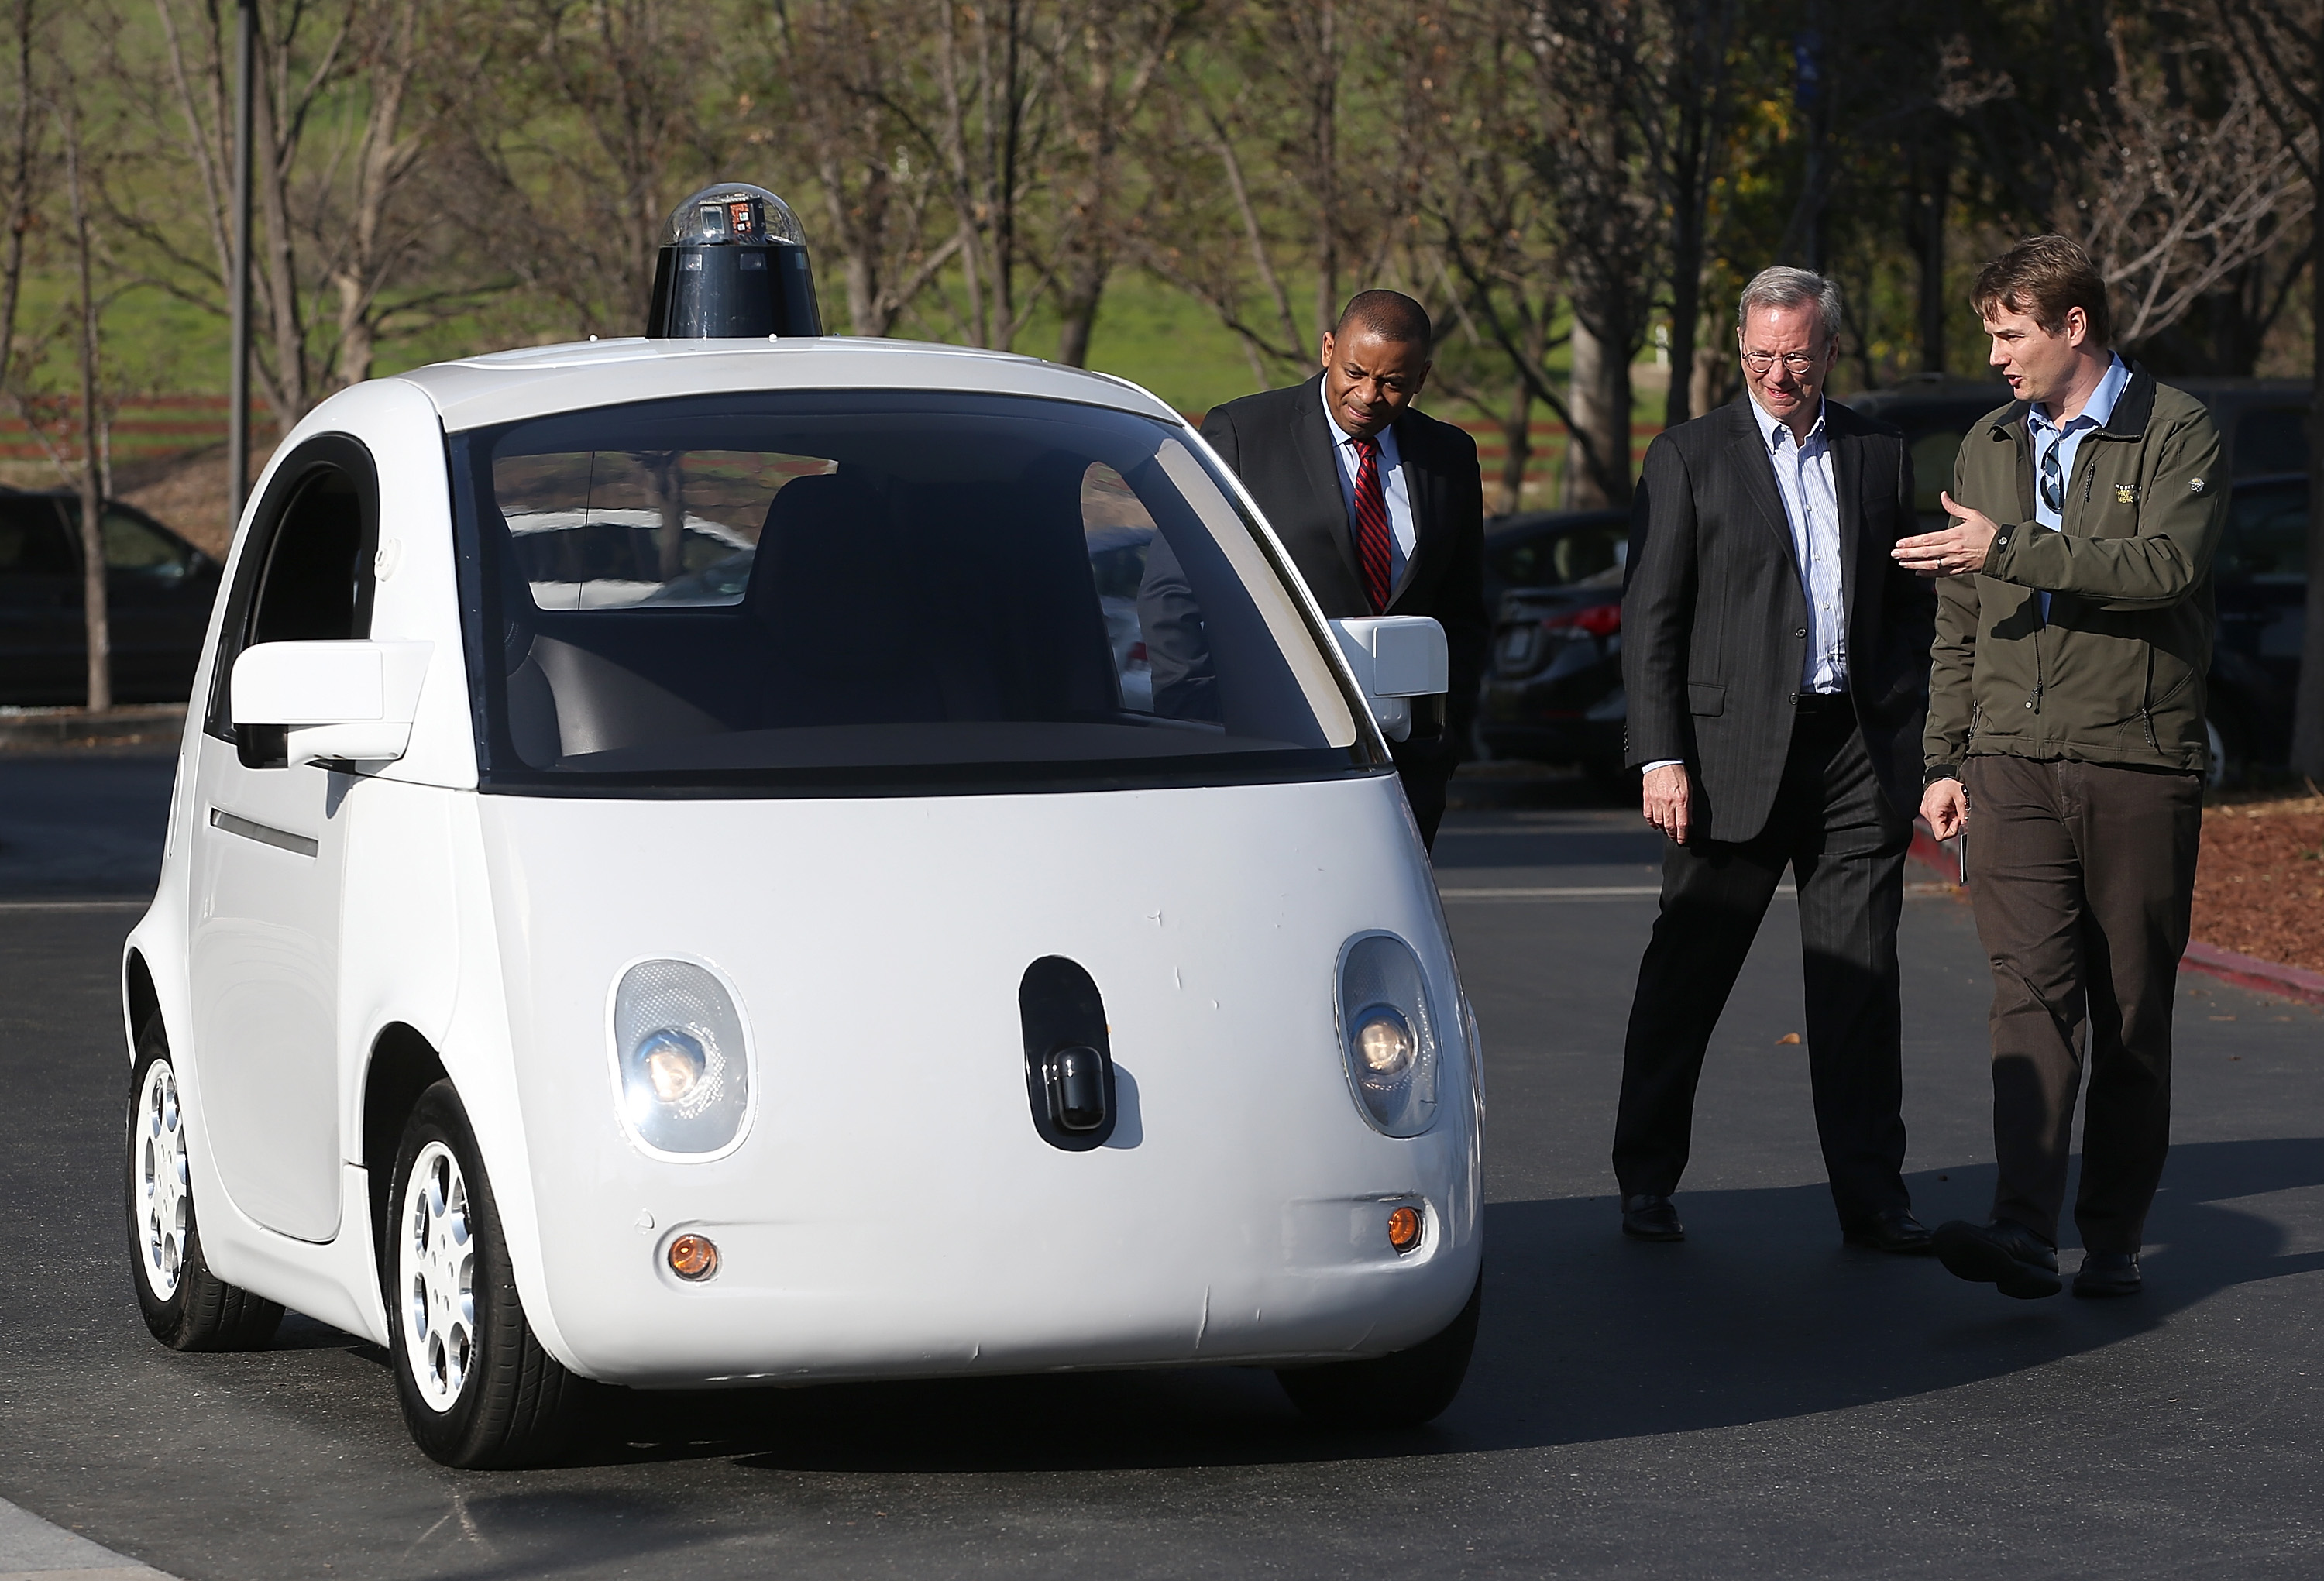 Google's Chris Urmson (R) shows a Google self-driving car to U.S. Transportation Secretary Anthony Foxx (L) and Google Chairman Eric Schmidt (C) at the Google headquarters on February 2, 2015 in Mountain View, California.  U.S. Transportation Secretary Anthony Foxx joined Google Chairman Eric Schmidt for a fireside chat where he unveiled Beyond Traffic, a new analysis from the U.S. Department of Transportation that anticipates the trends and choices facing our transportation system over the next three decades.